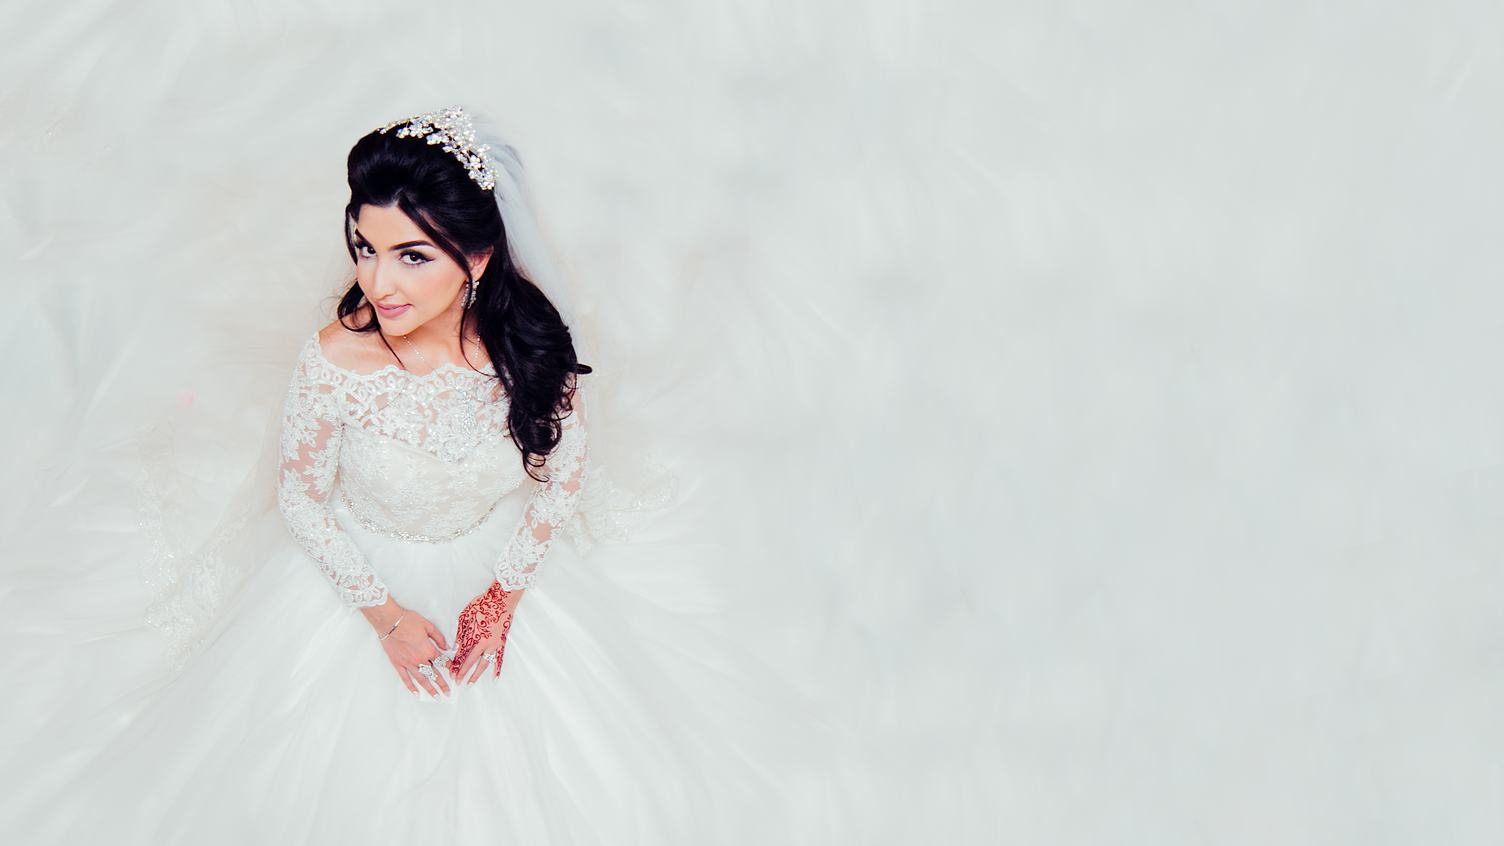 Beautiful Bride Dressed in White Dress Top View